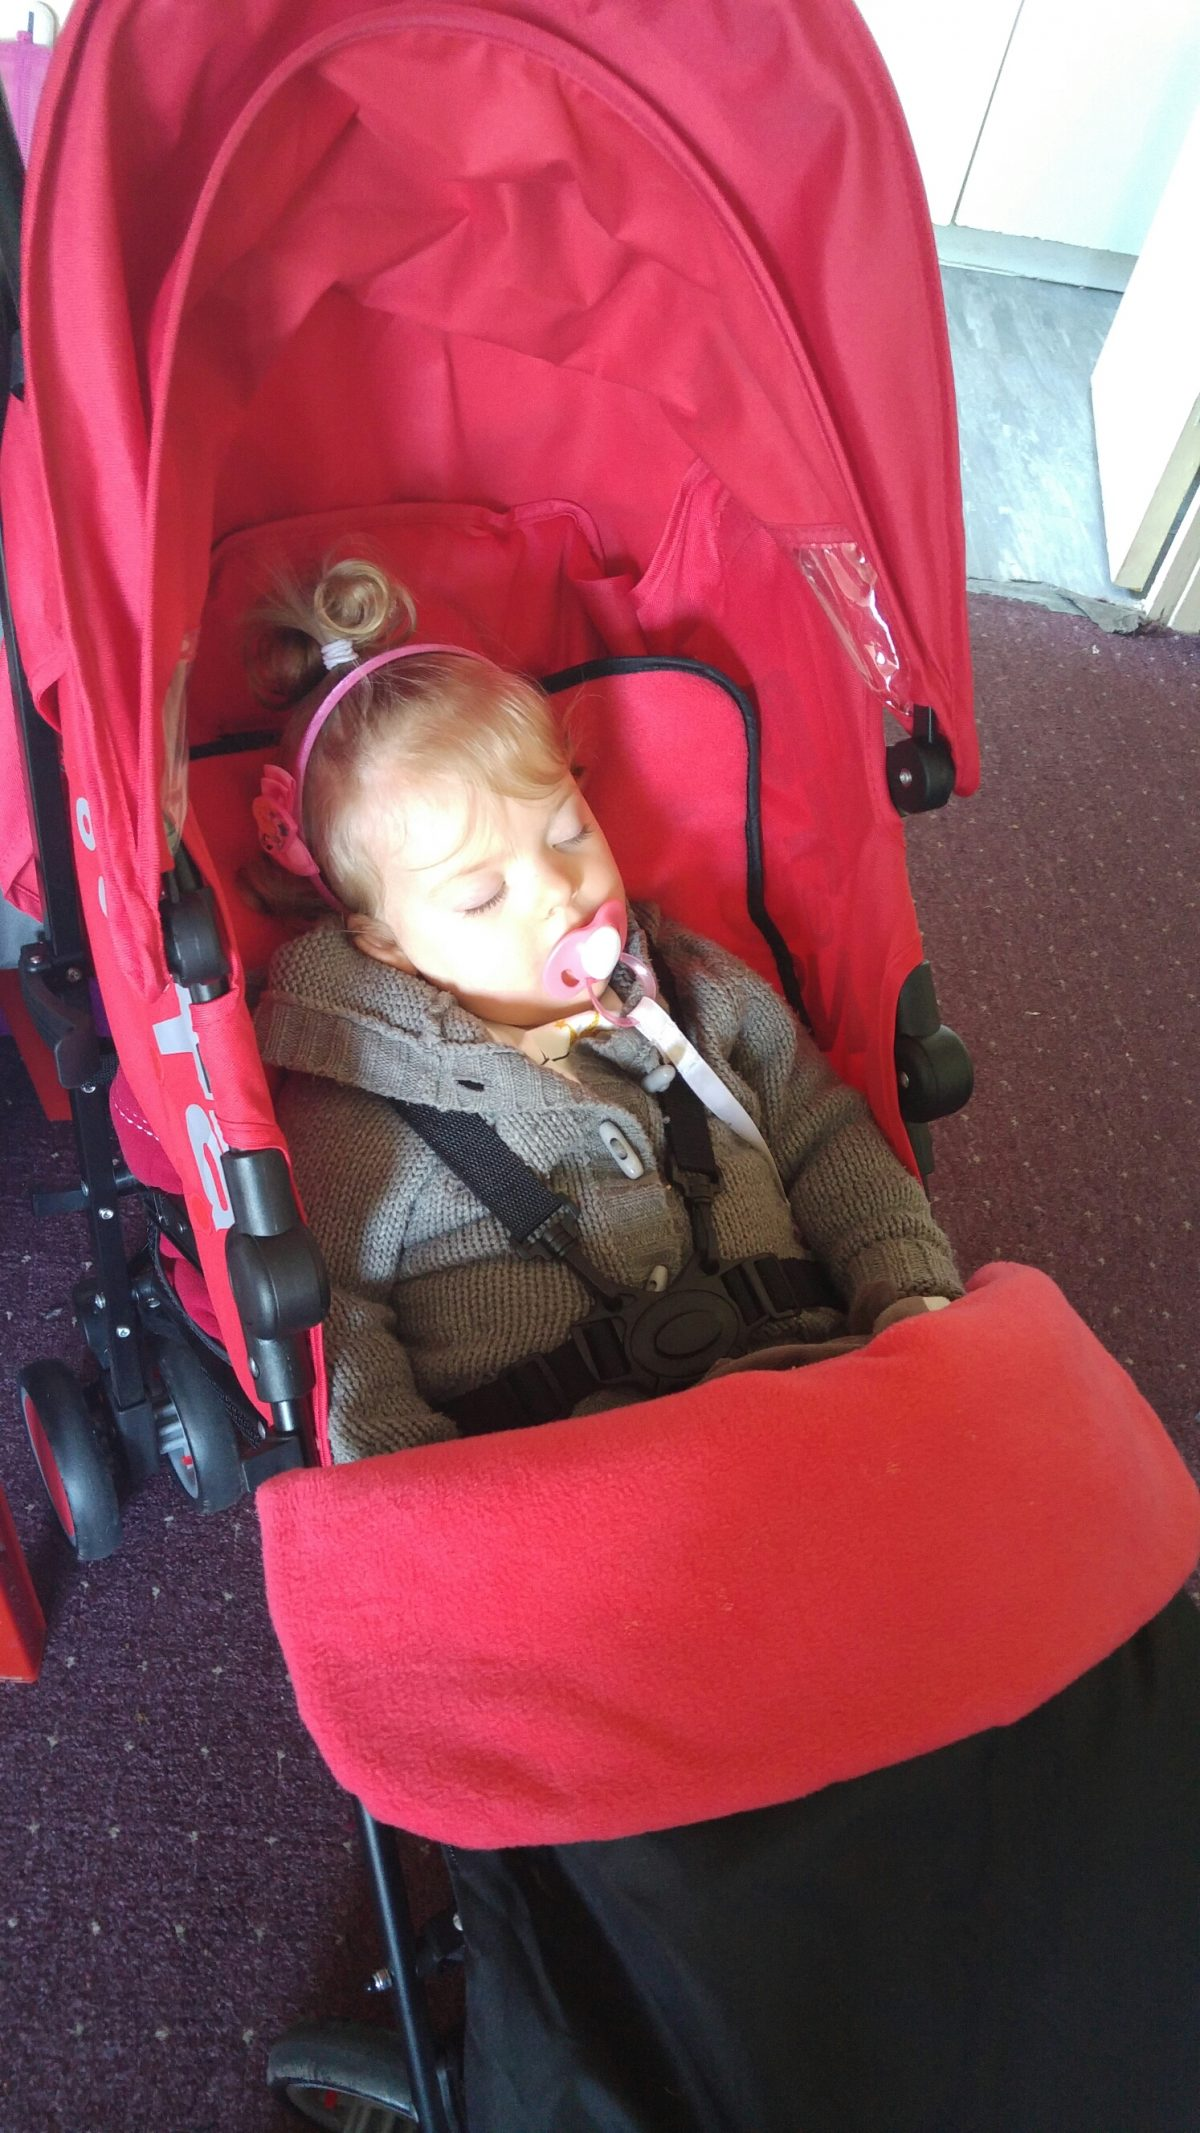 Sleeping in her stroller